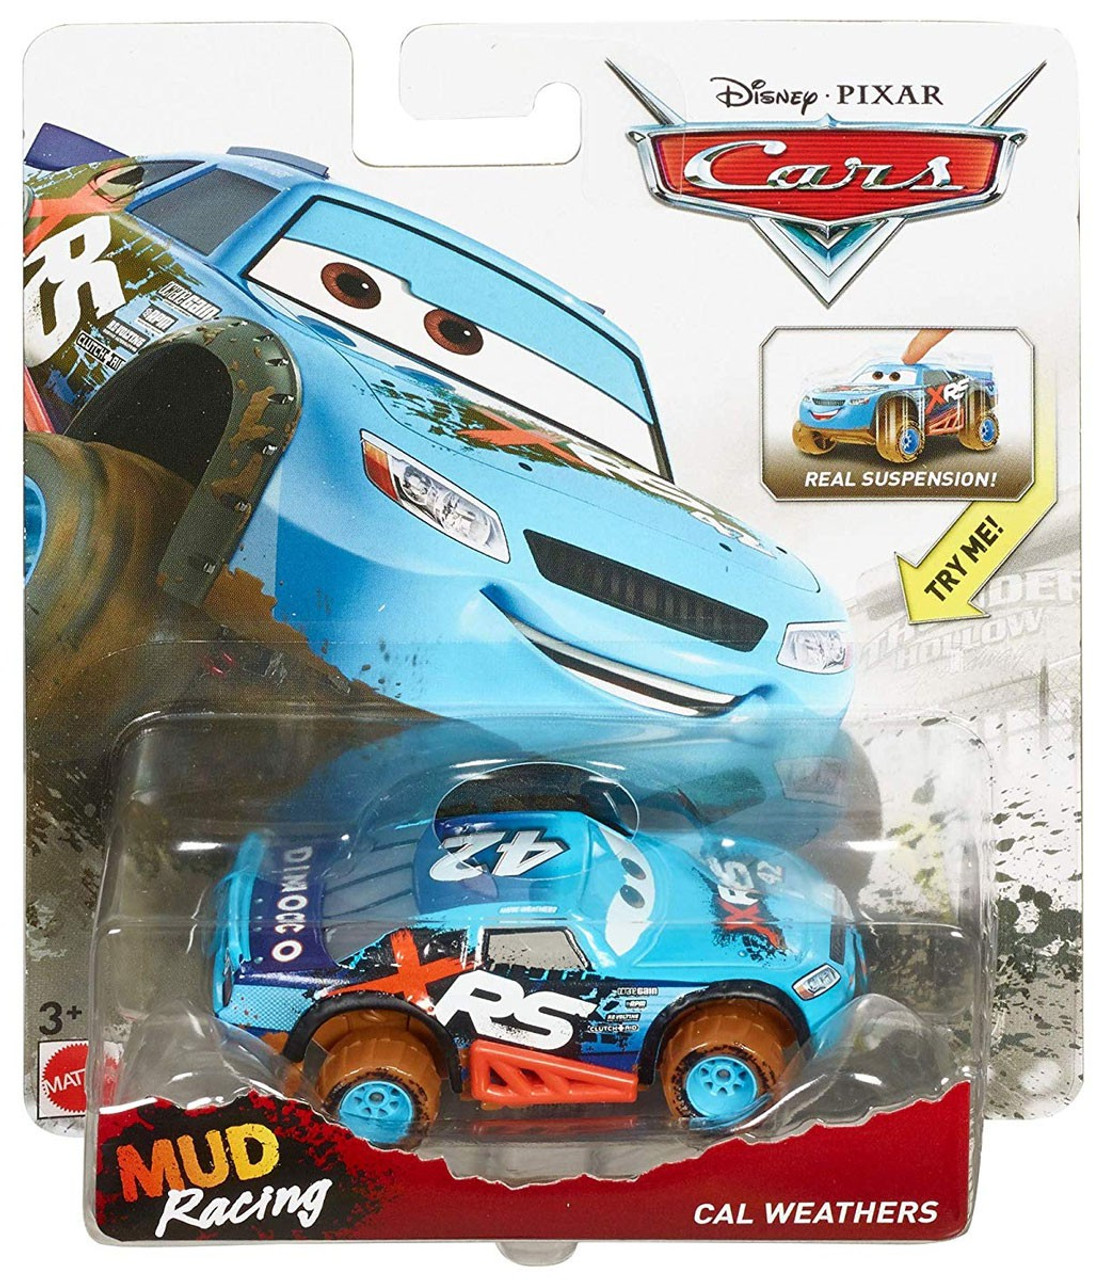 Disney Pixar Cars Cars 3 Xrs Mud Racing Cal Weathers Diecast Car Xrs